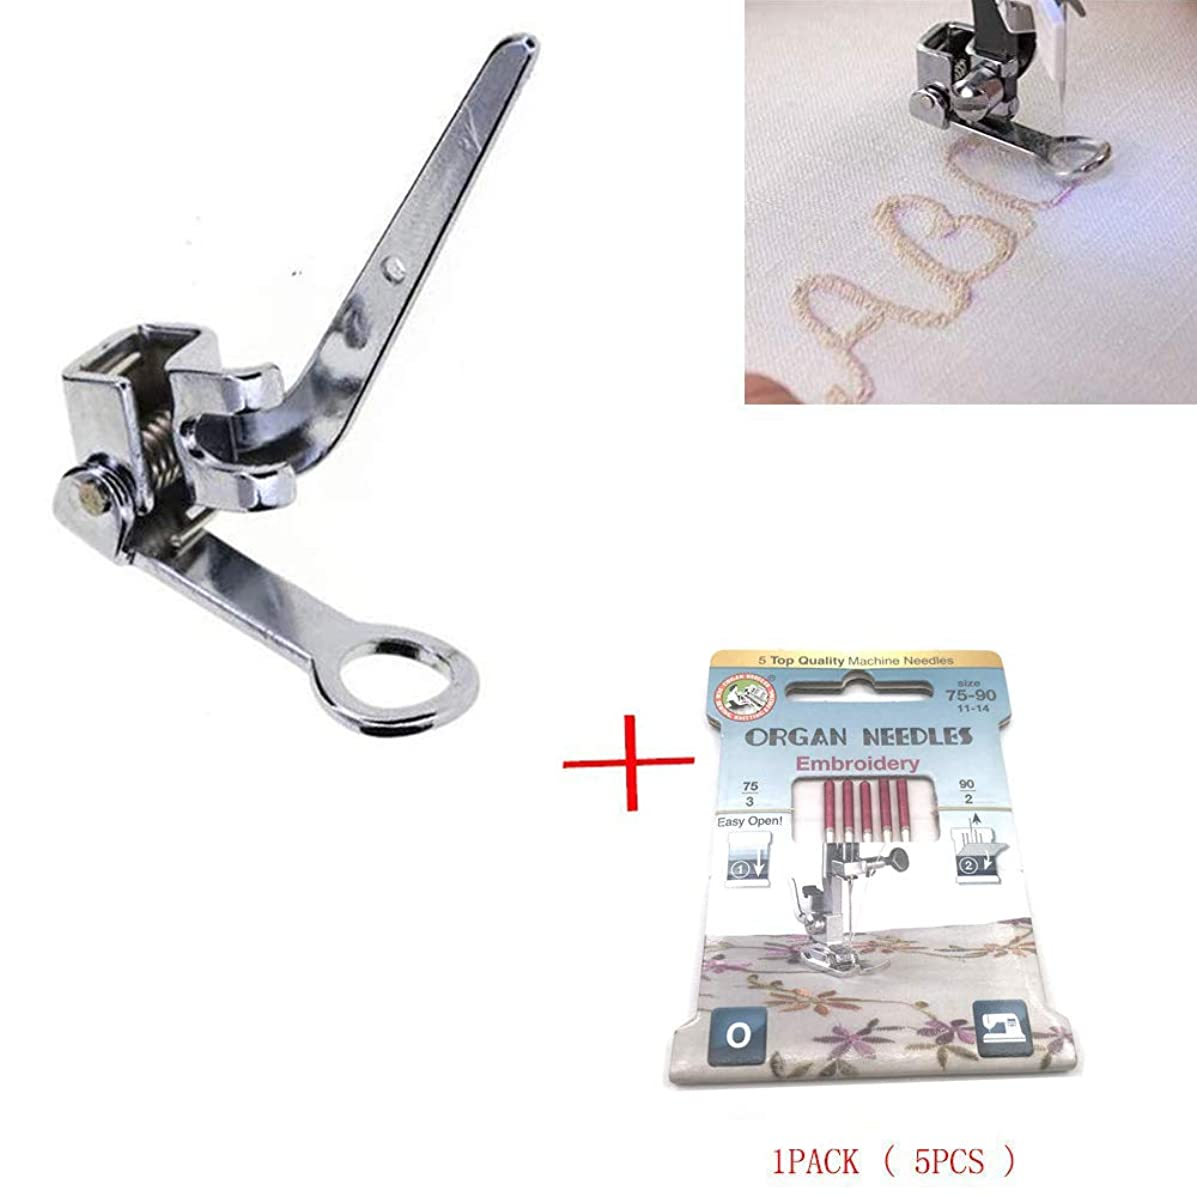 LNKA #55417 Metal Low Shank Presser Feet Embroidery Darning Foot for Singer Brother Toyota #006016008 with 1pack Embroidery Needle